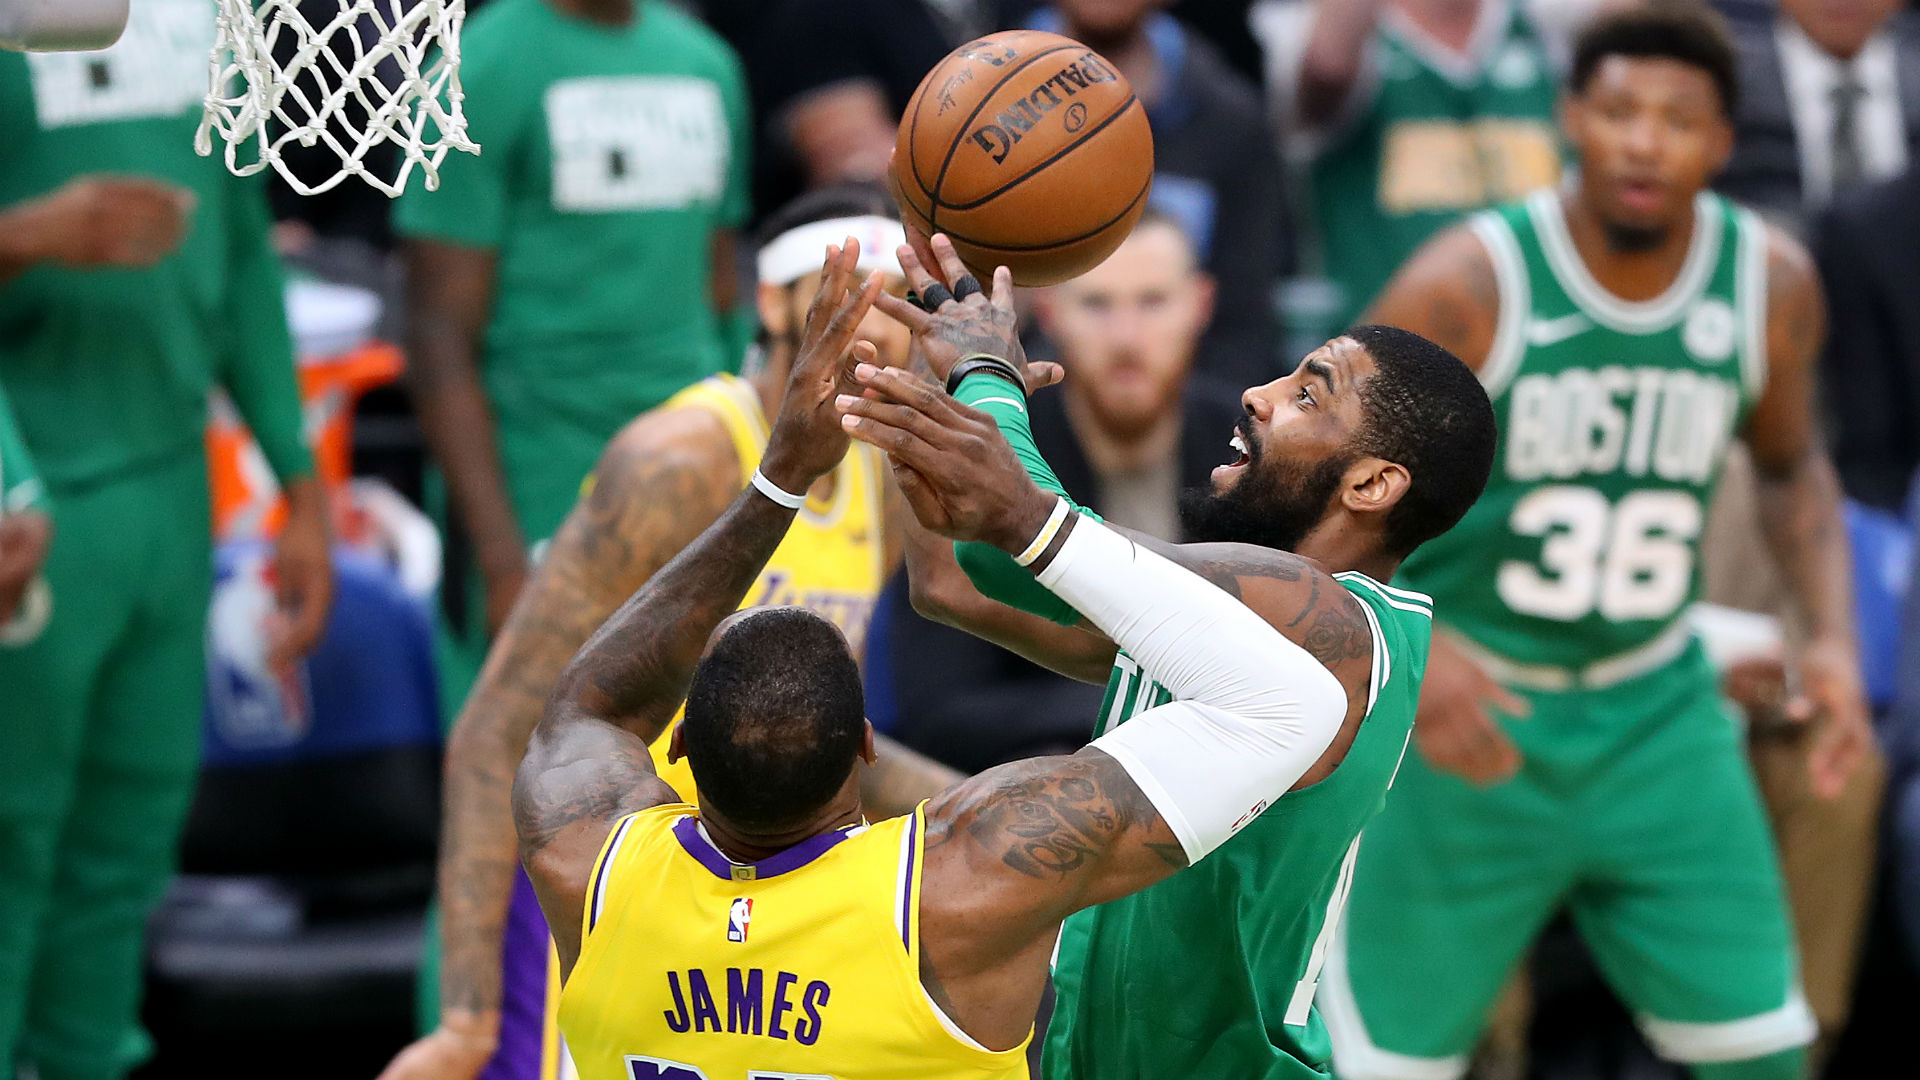 93d5cc8b68d Kyrie Irving excited by LeBron James' All-Star team | Sporting News